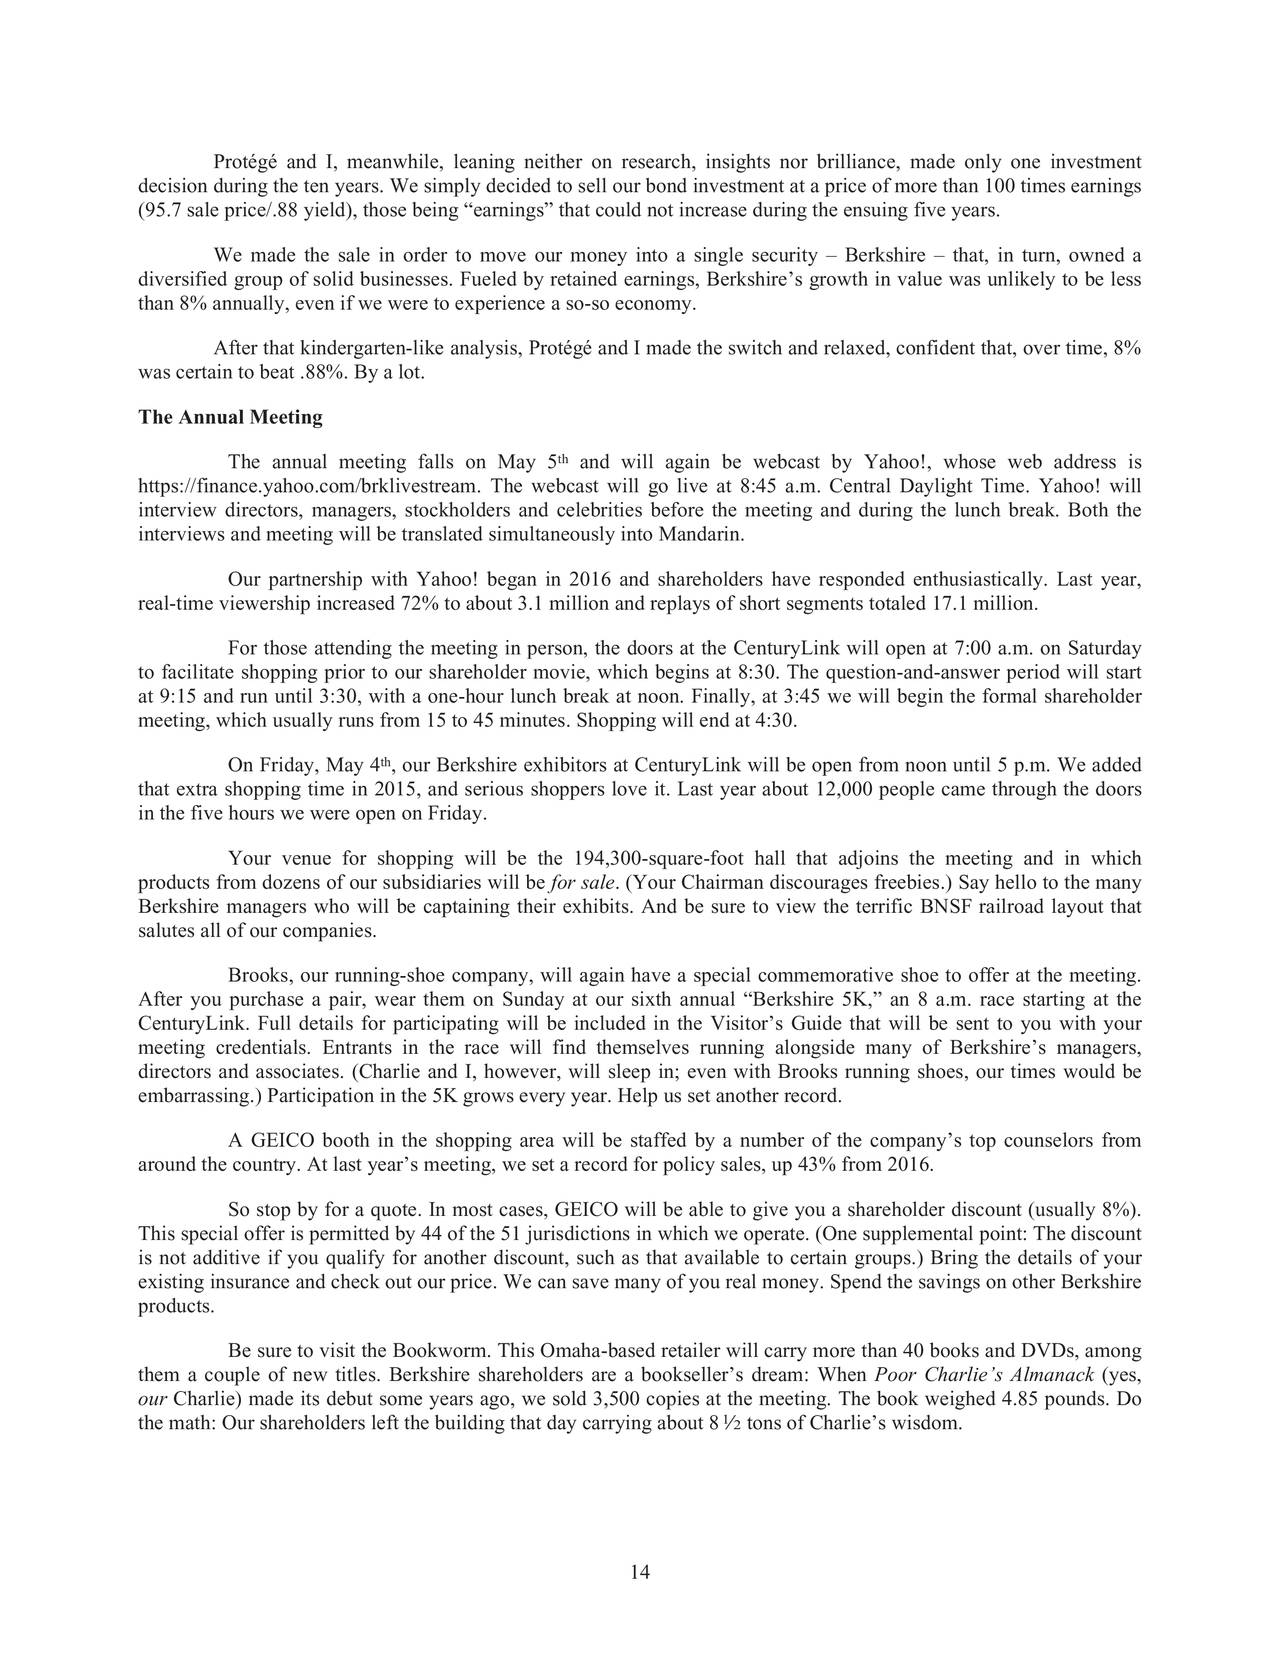 a business analysis of the acquisition of geico corporation by berkshire hathaway Not only is the acquisition mr buffett's most ambitious — just weeks from his 85th birthday — but it is the company will continue to do business under the precision castparts name and maintain warren buffett's berkshire hathaway said to be near deal to buy.